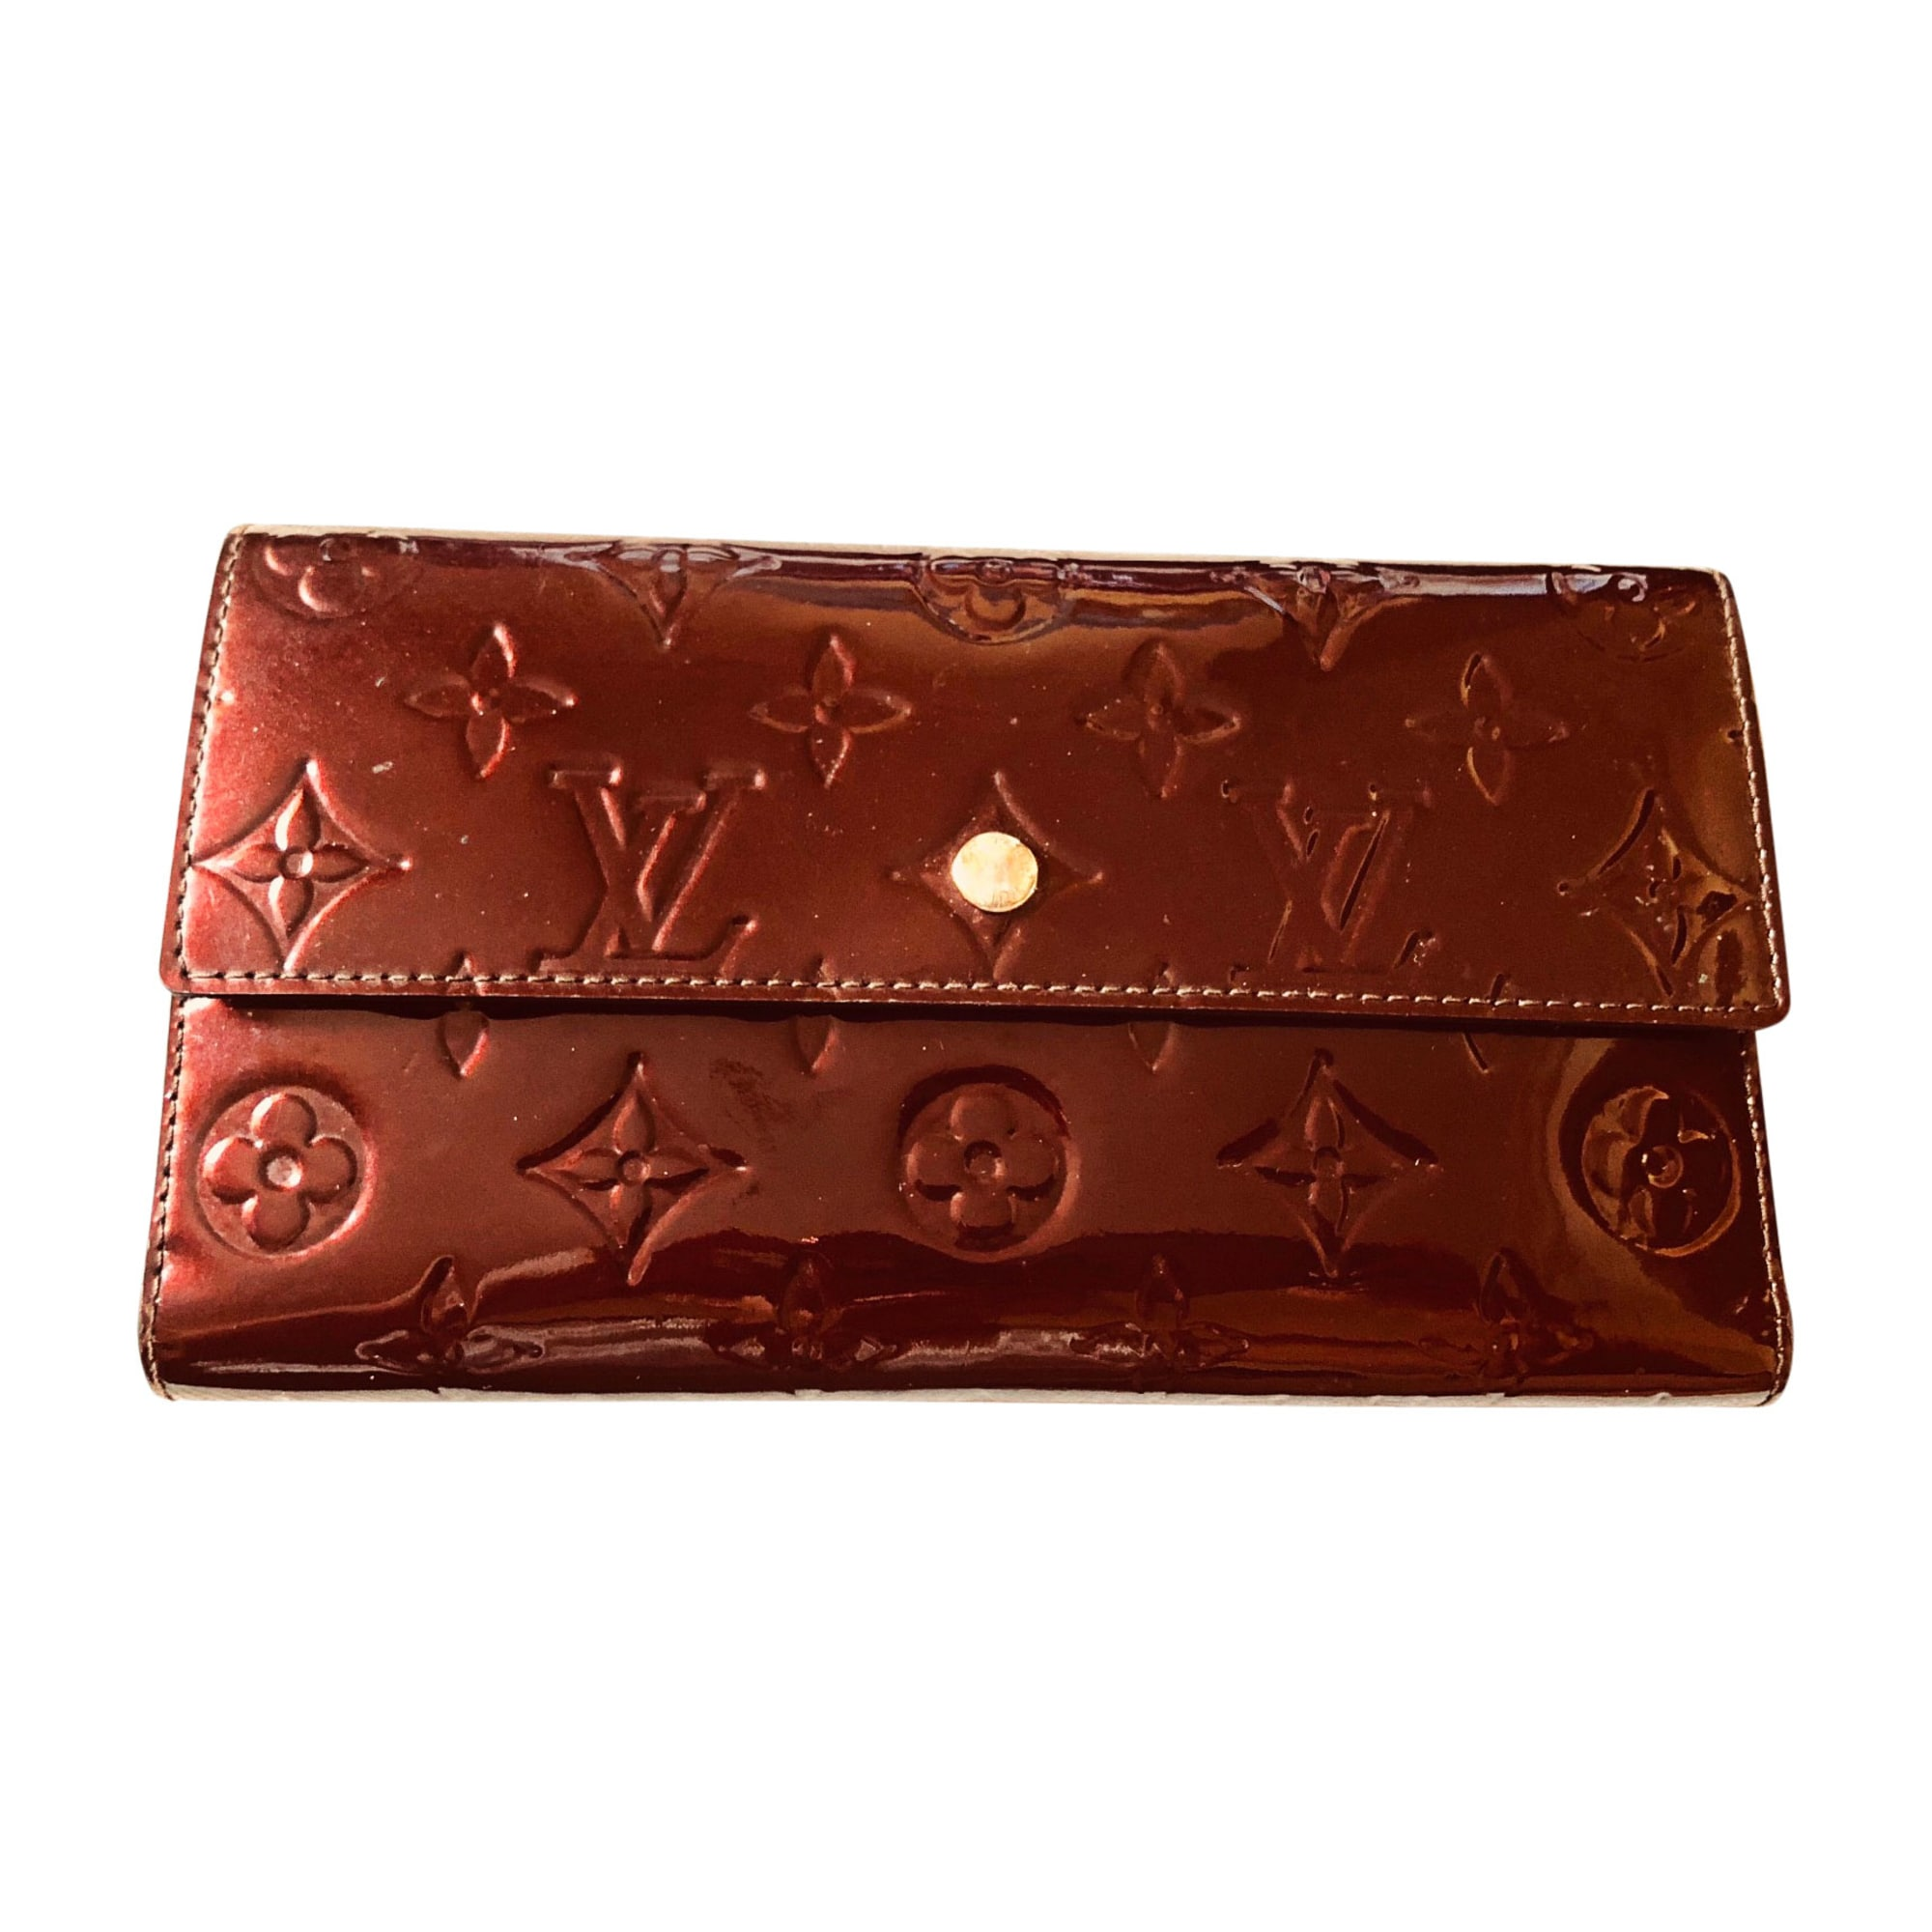 Portefeuille LOUIS VUITTON marron - 7993815 d34cacb1c90